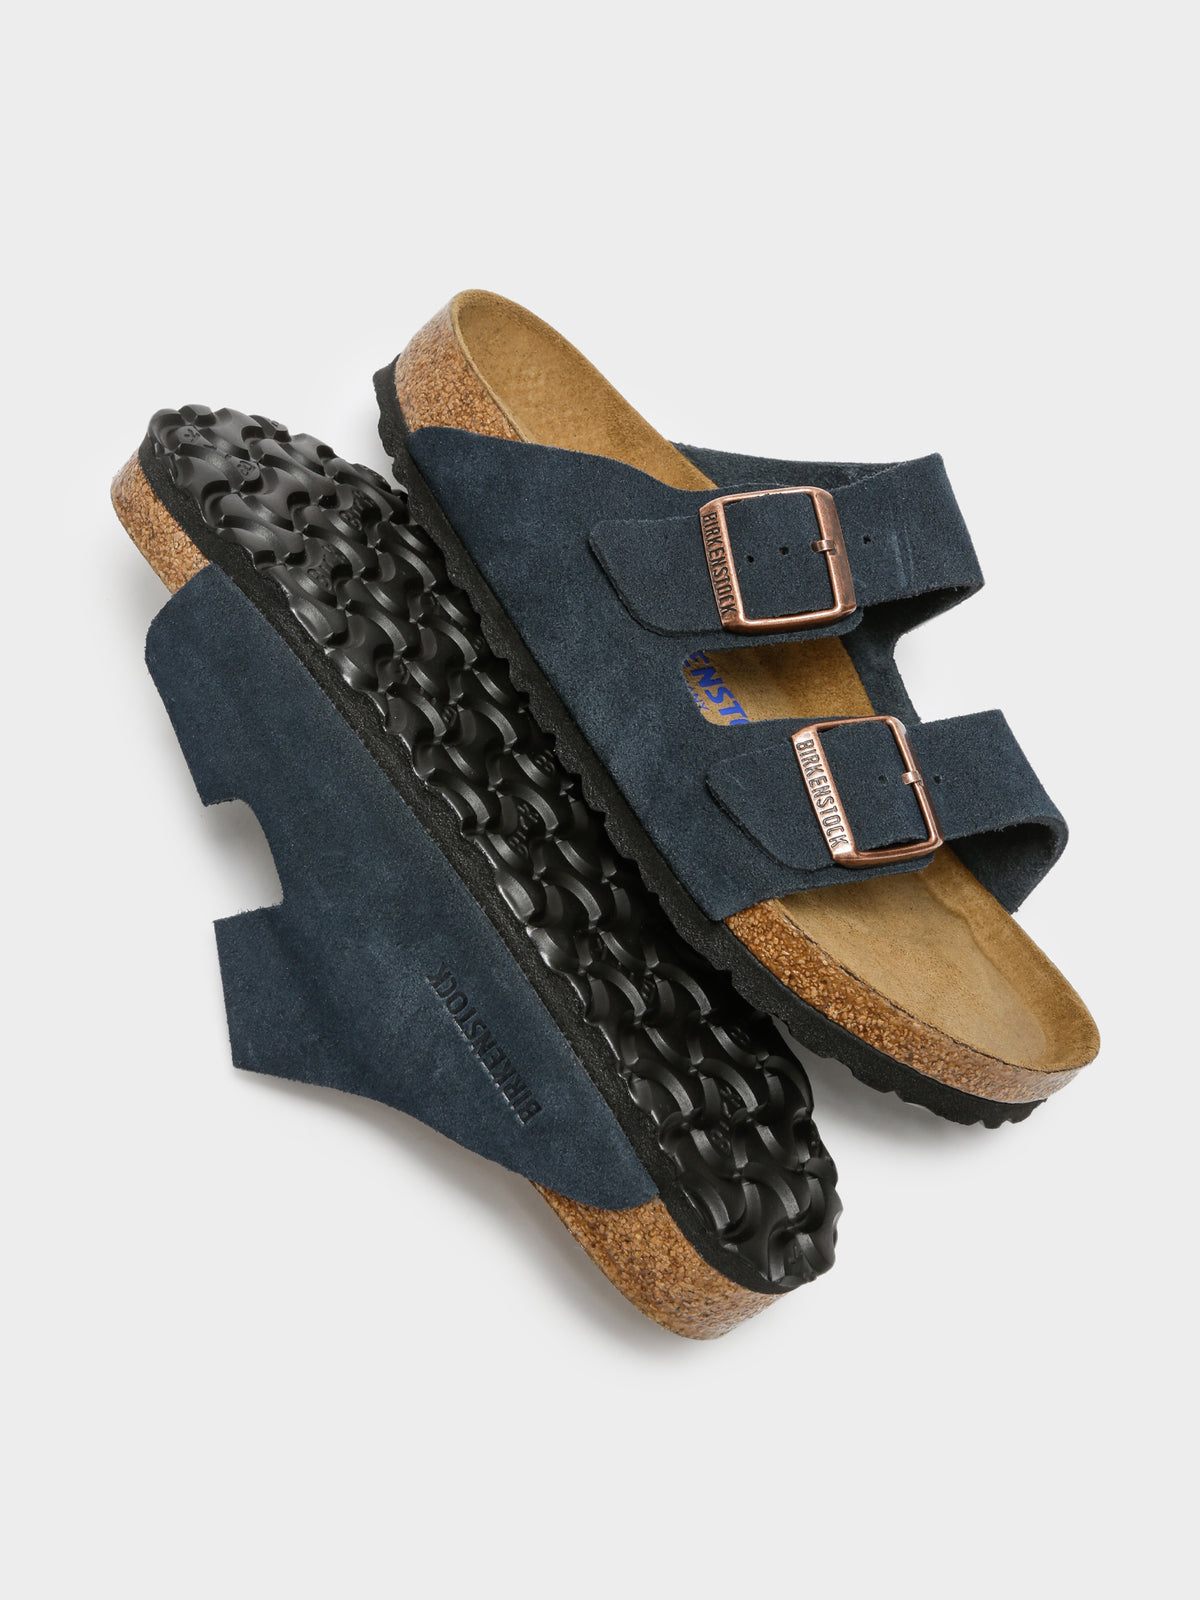 Unisex Arizona Sandals in Navy